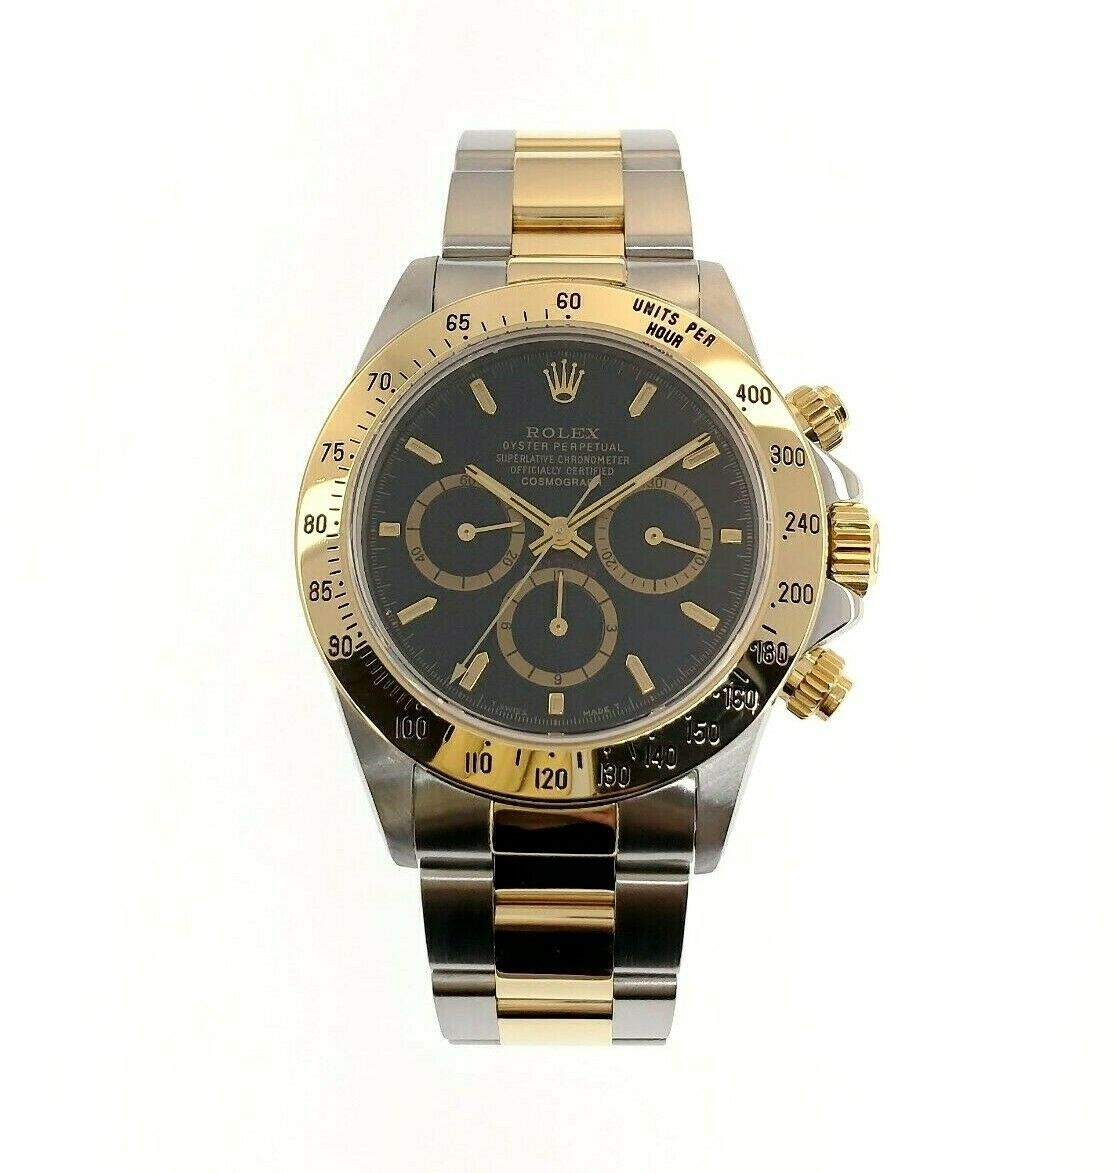 Rolex Cosmograph Daytona 40mm 18K Yellow Gold Steel Watch Ref 16523 U Serial